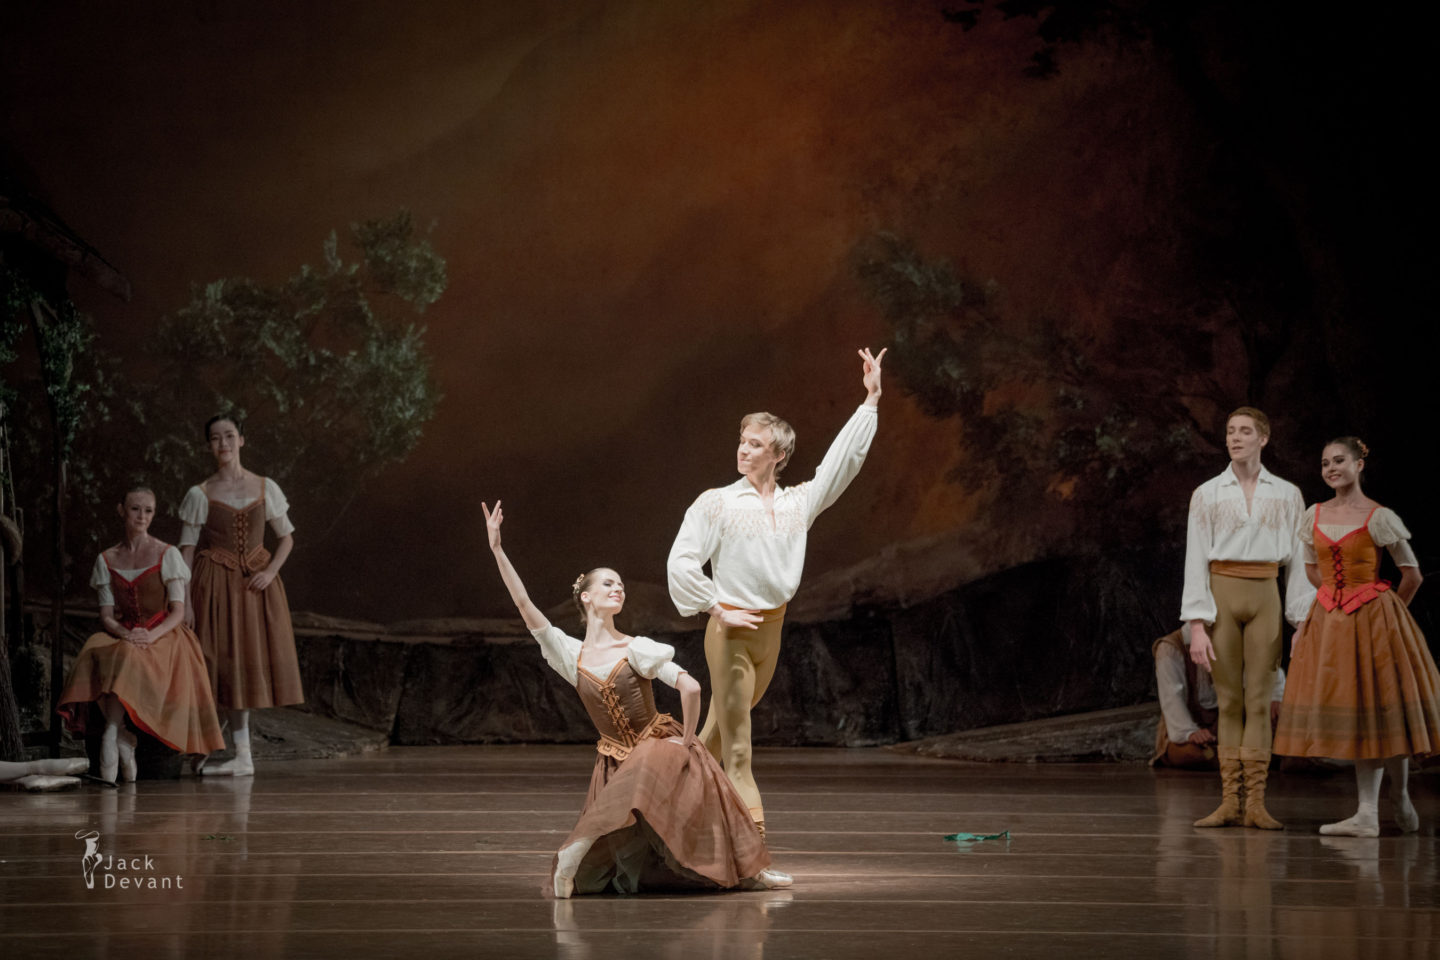 Tatiana Tiliguzova and Alexey Popov in Giselle